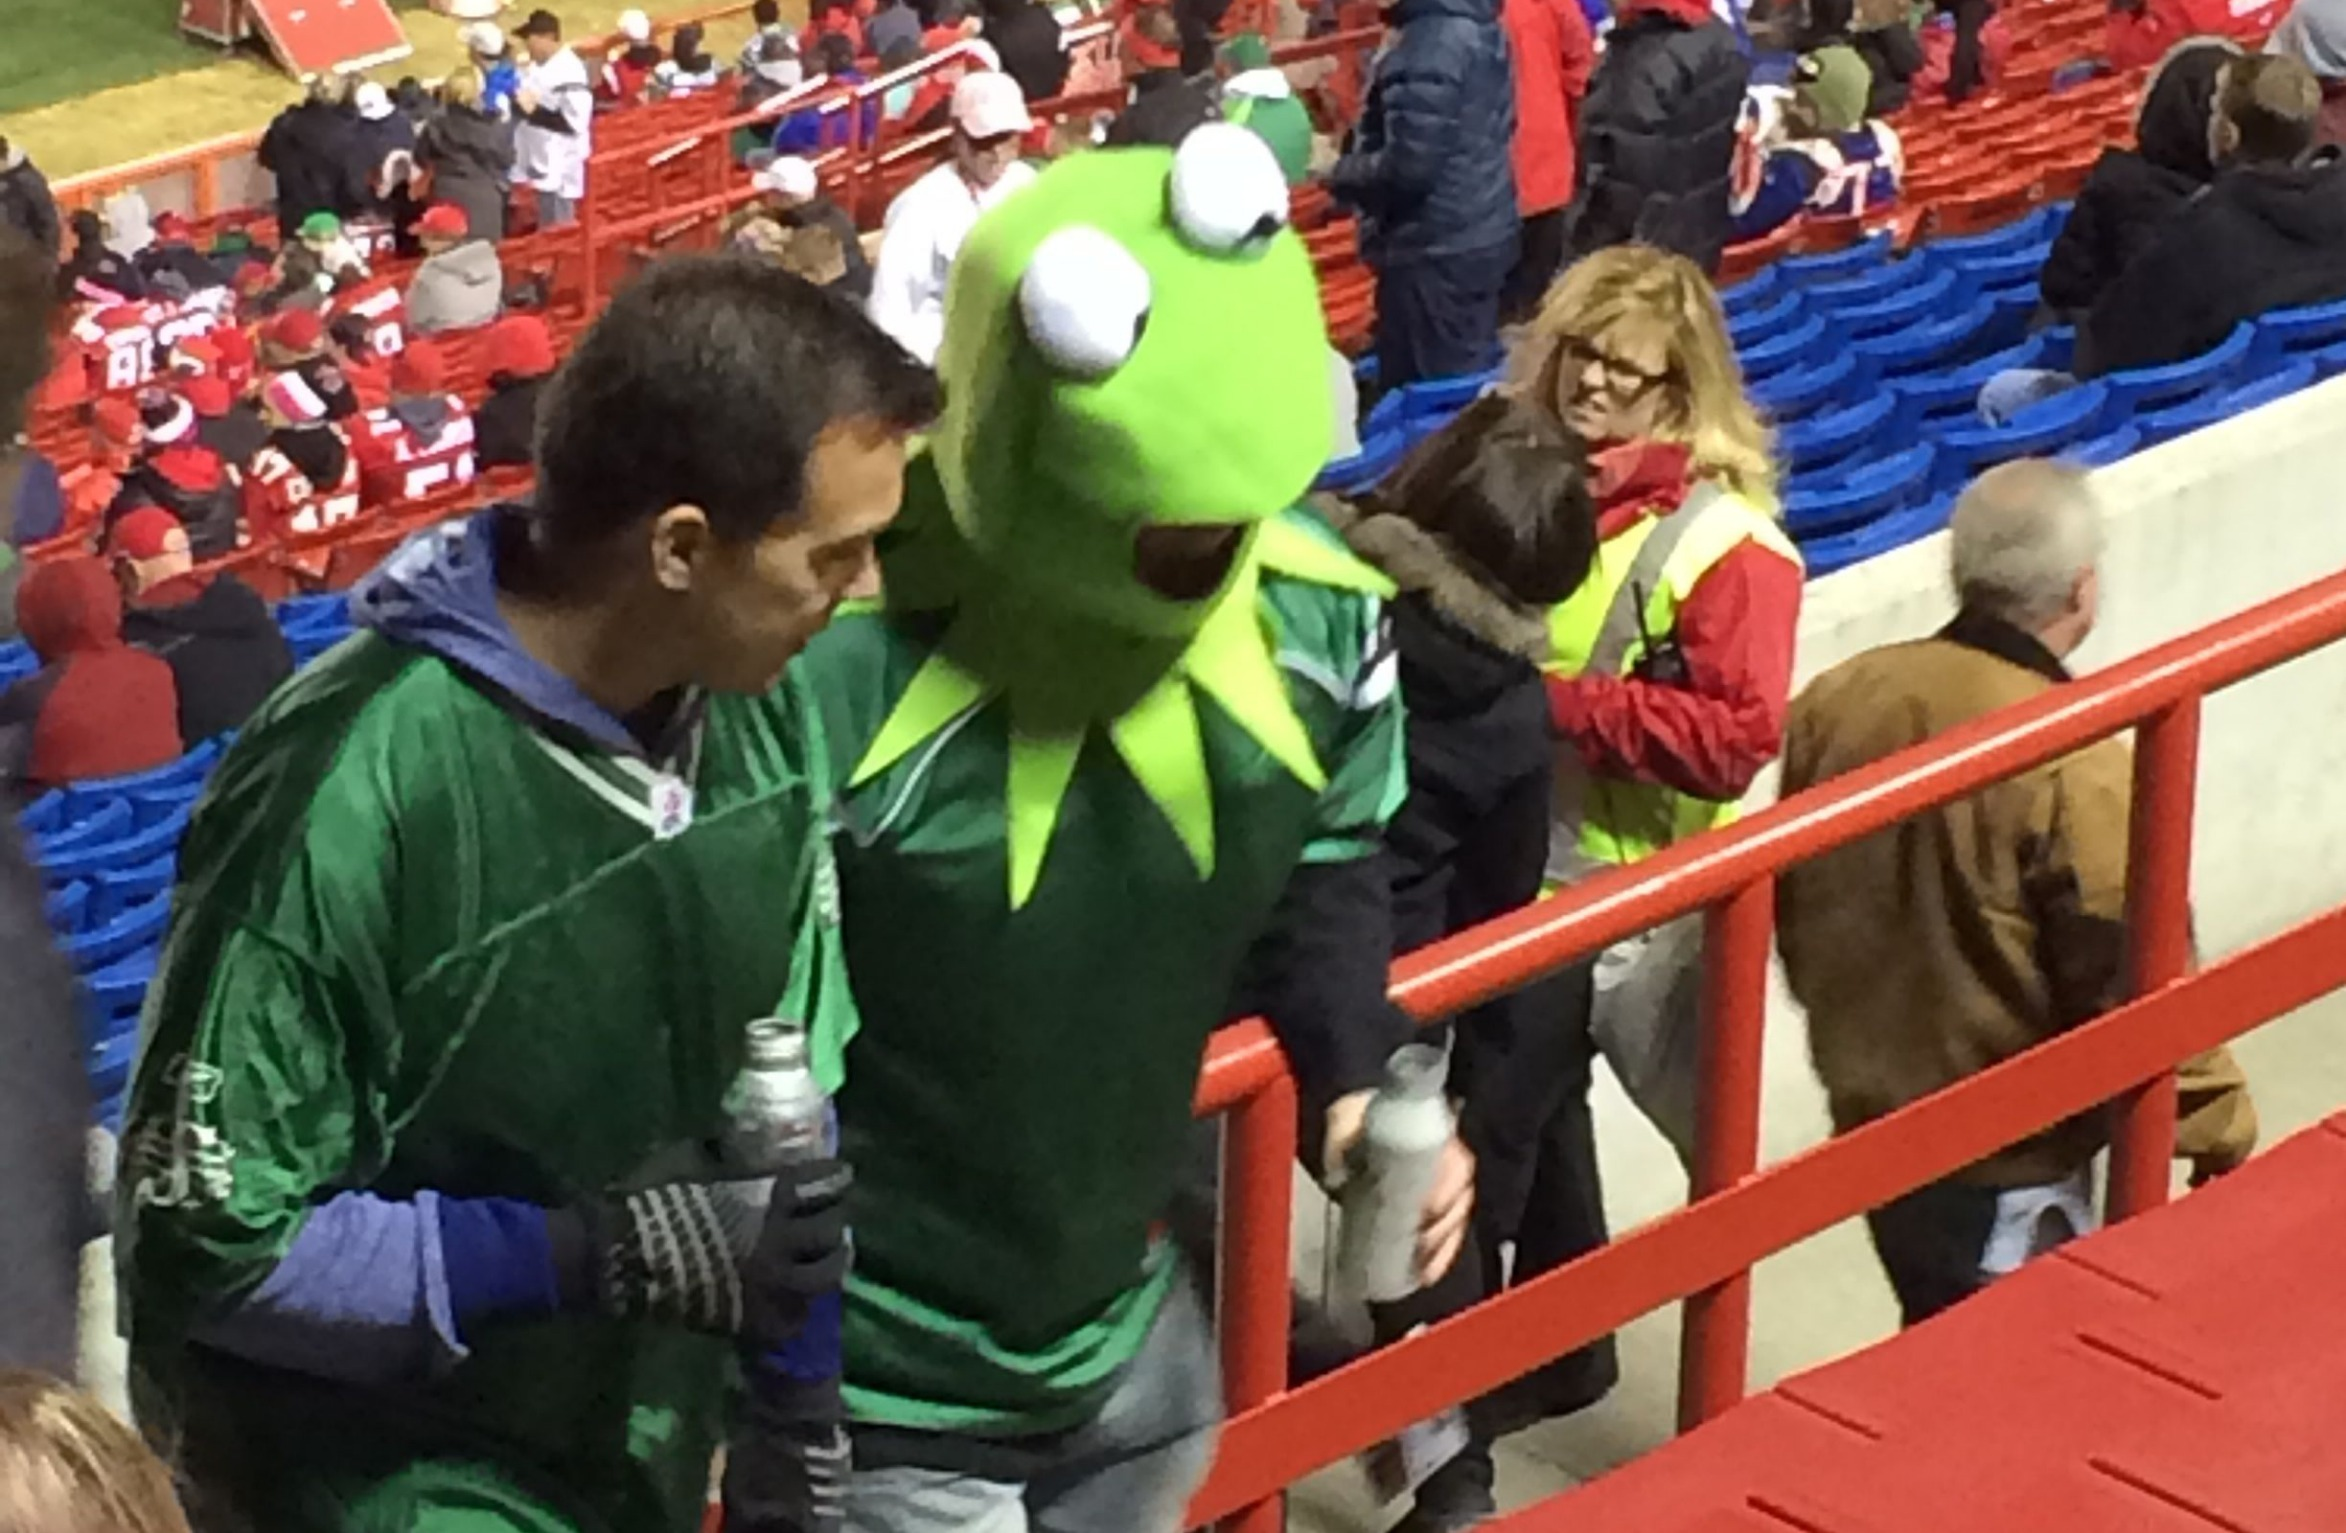 Rider fans dressed like Kermit